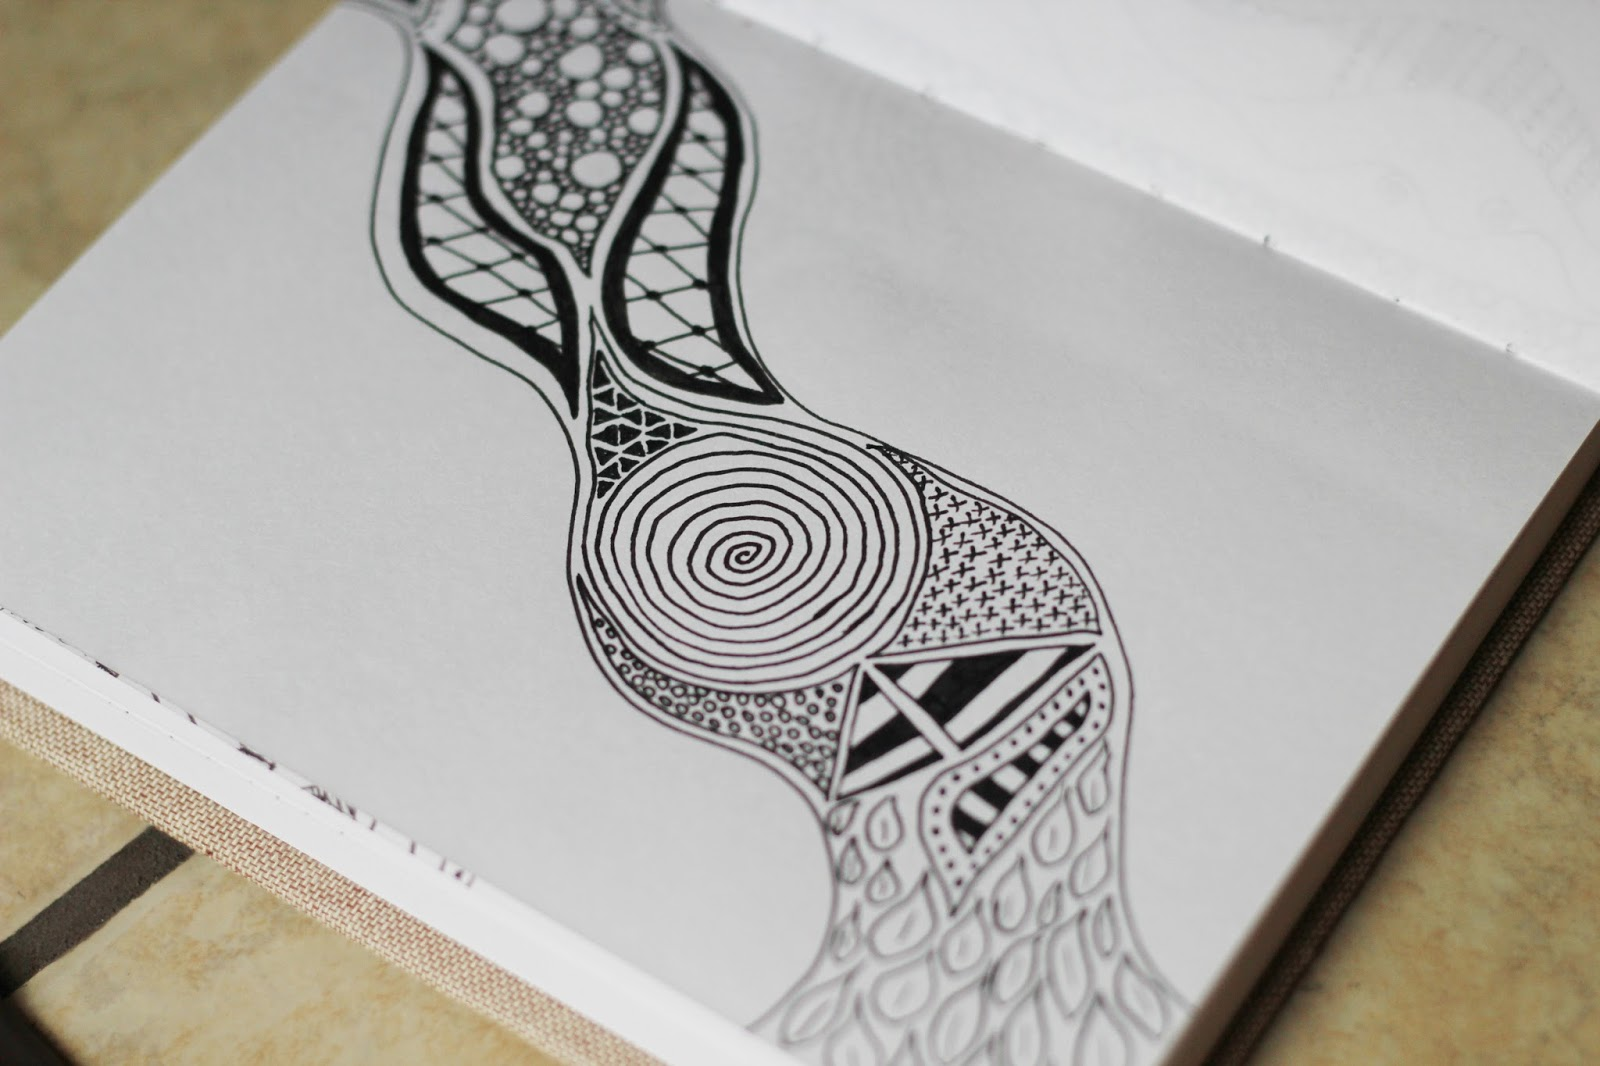 Cool Art Designs To Draw : Cool drawing designs joy studio design gallery best